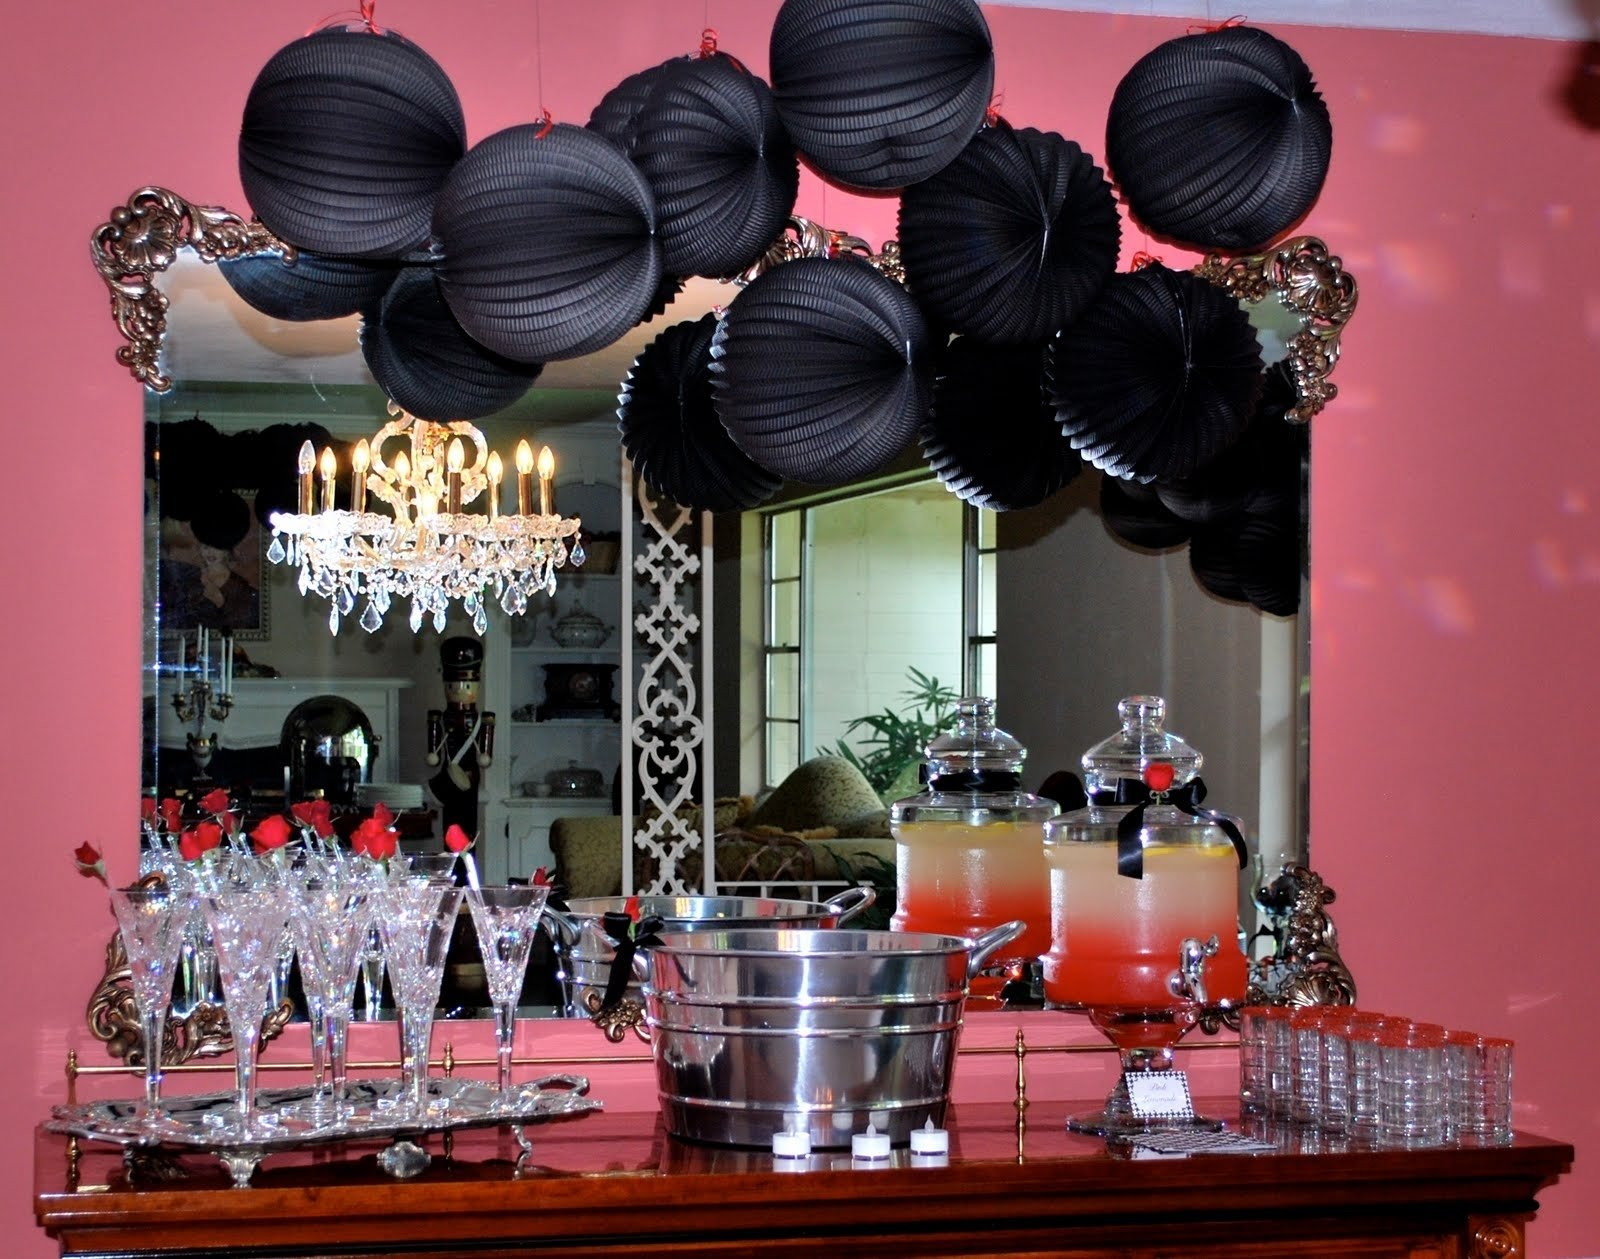 10 Attractive Creative 40Th Birthday Party Ideas some steps for making the 40th birthday party decorations e2 80 94